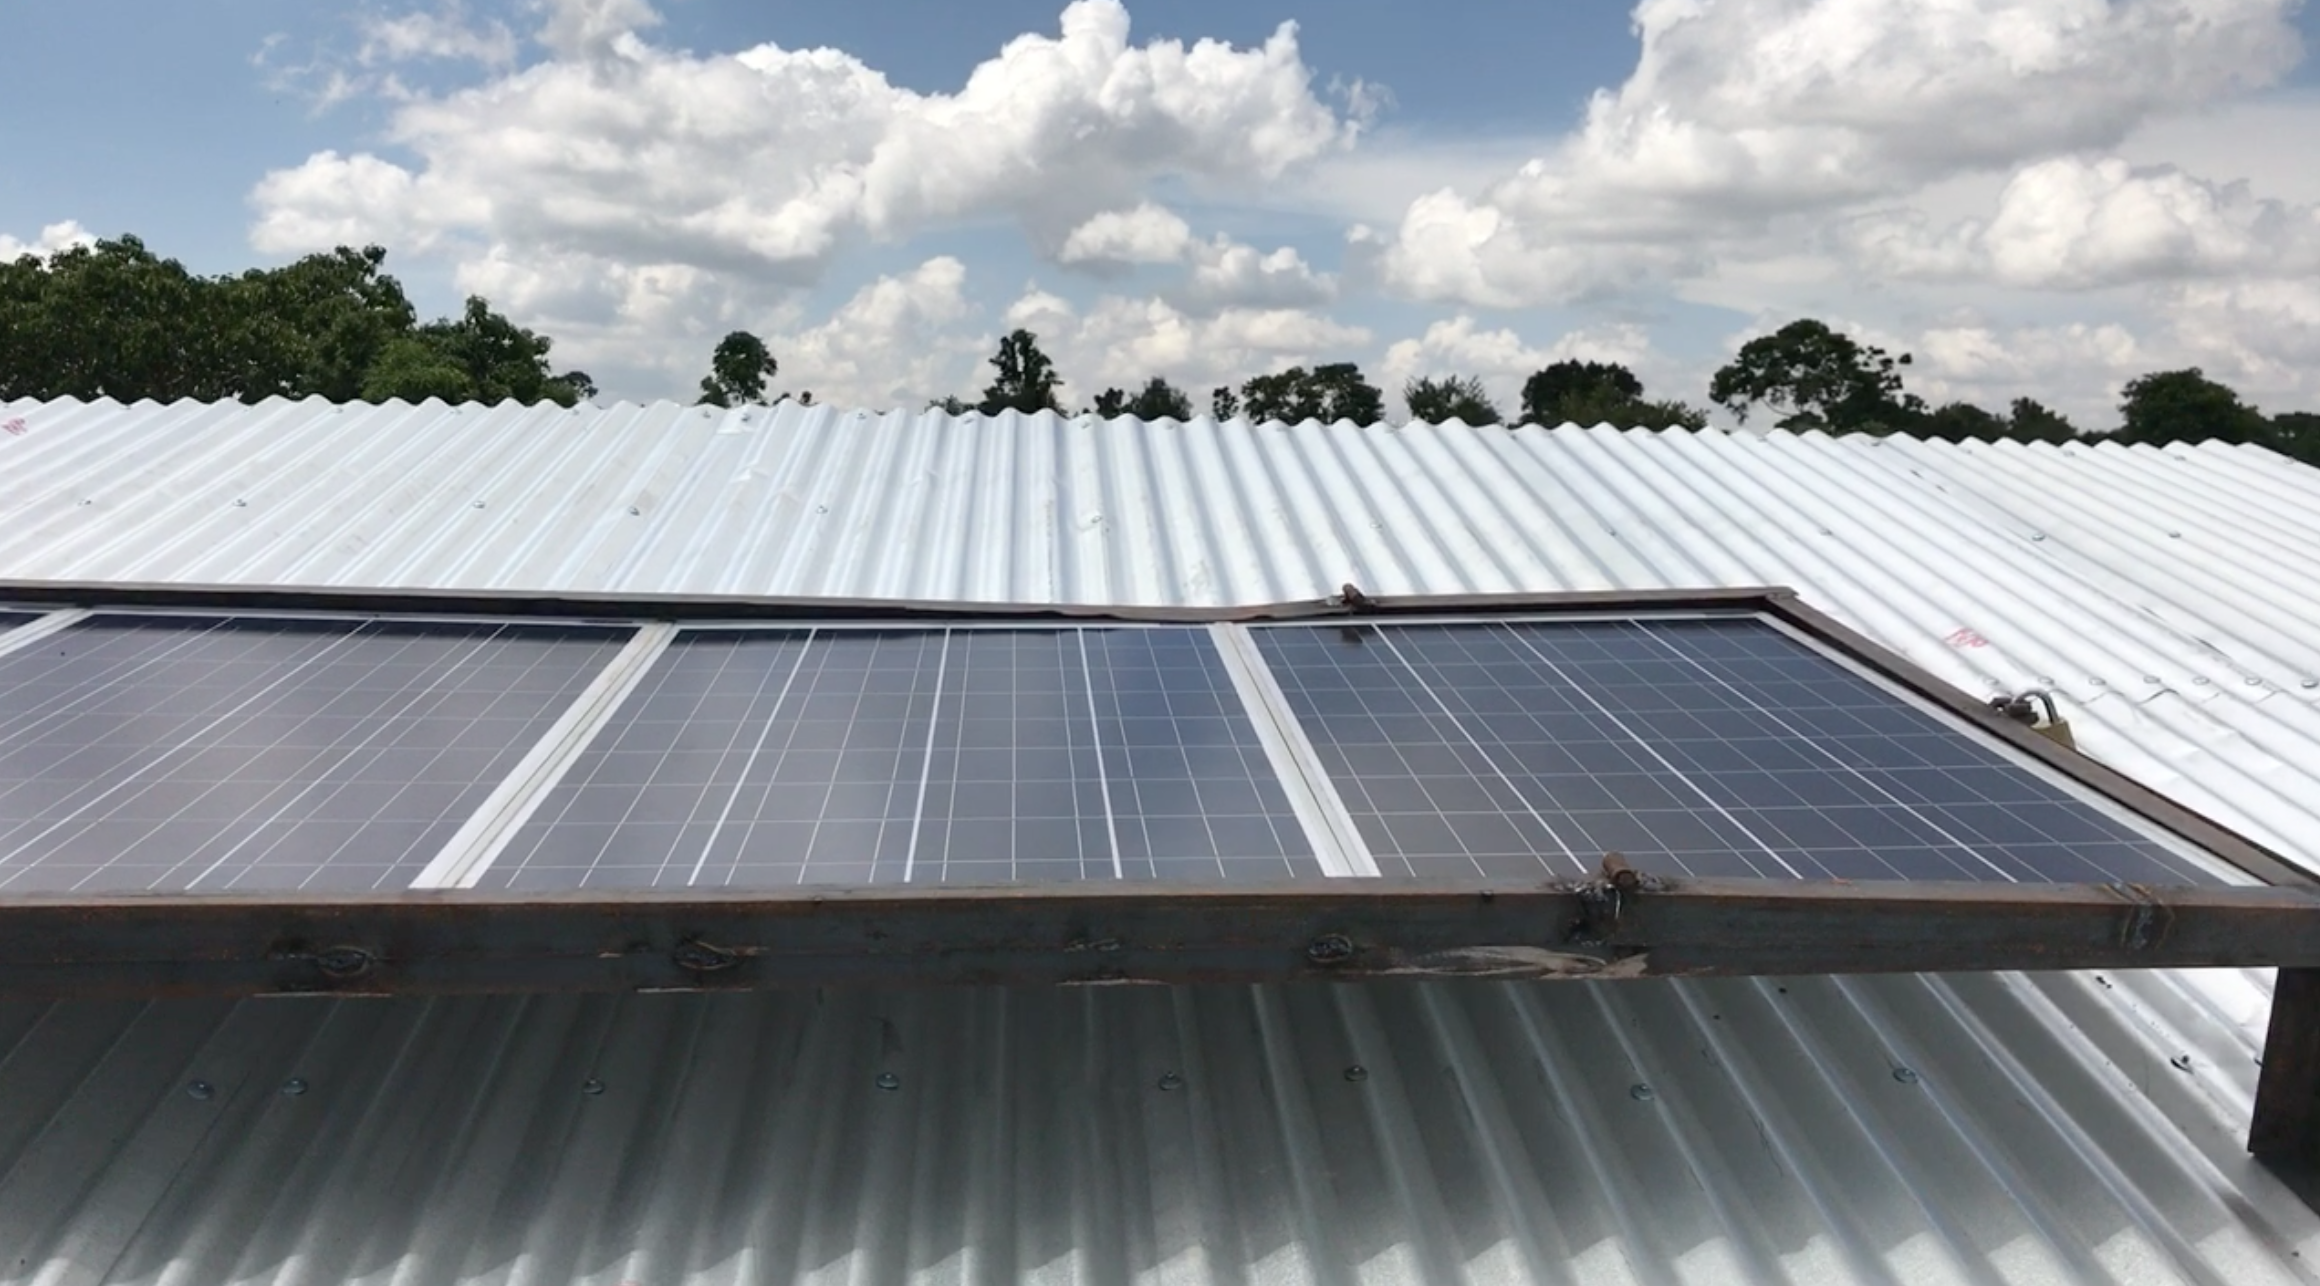 A few of our solar panels used to power the classroom.